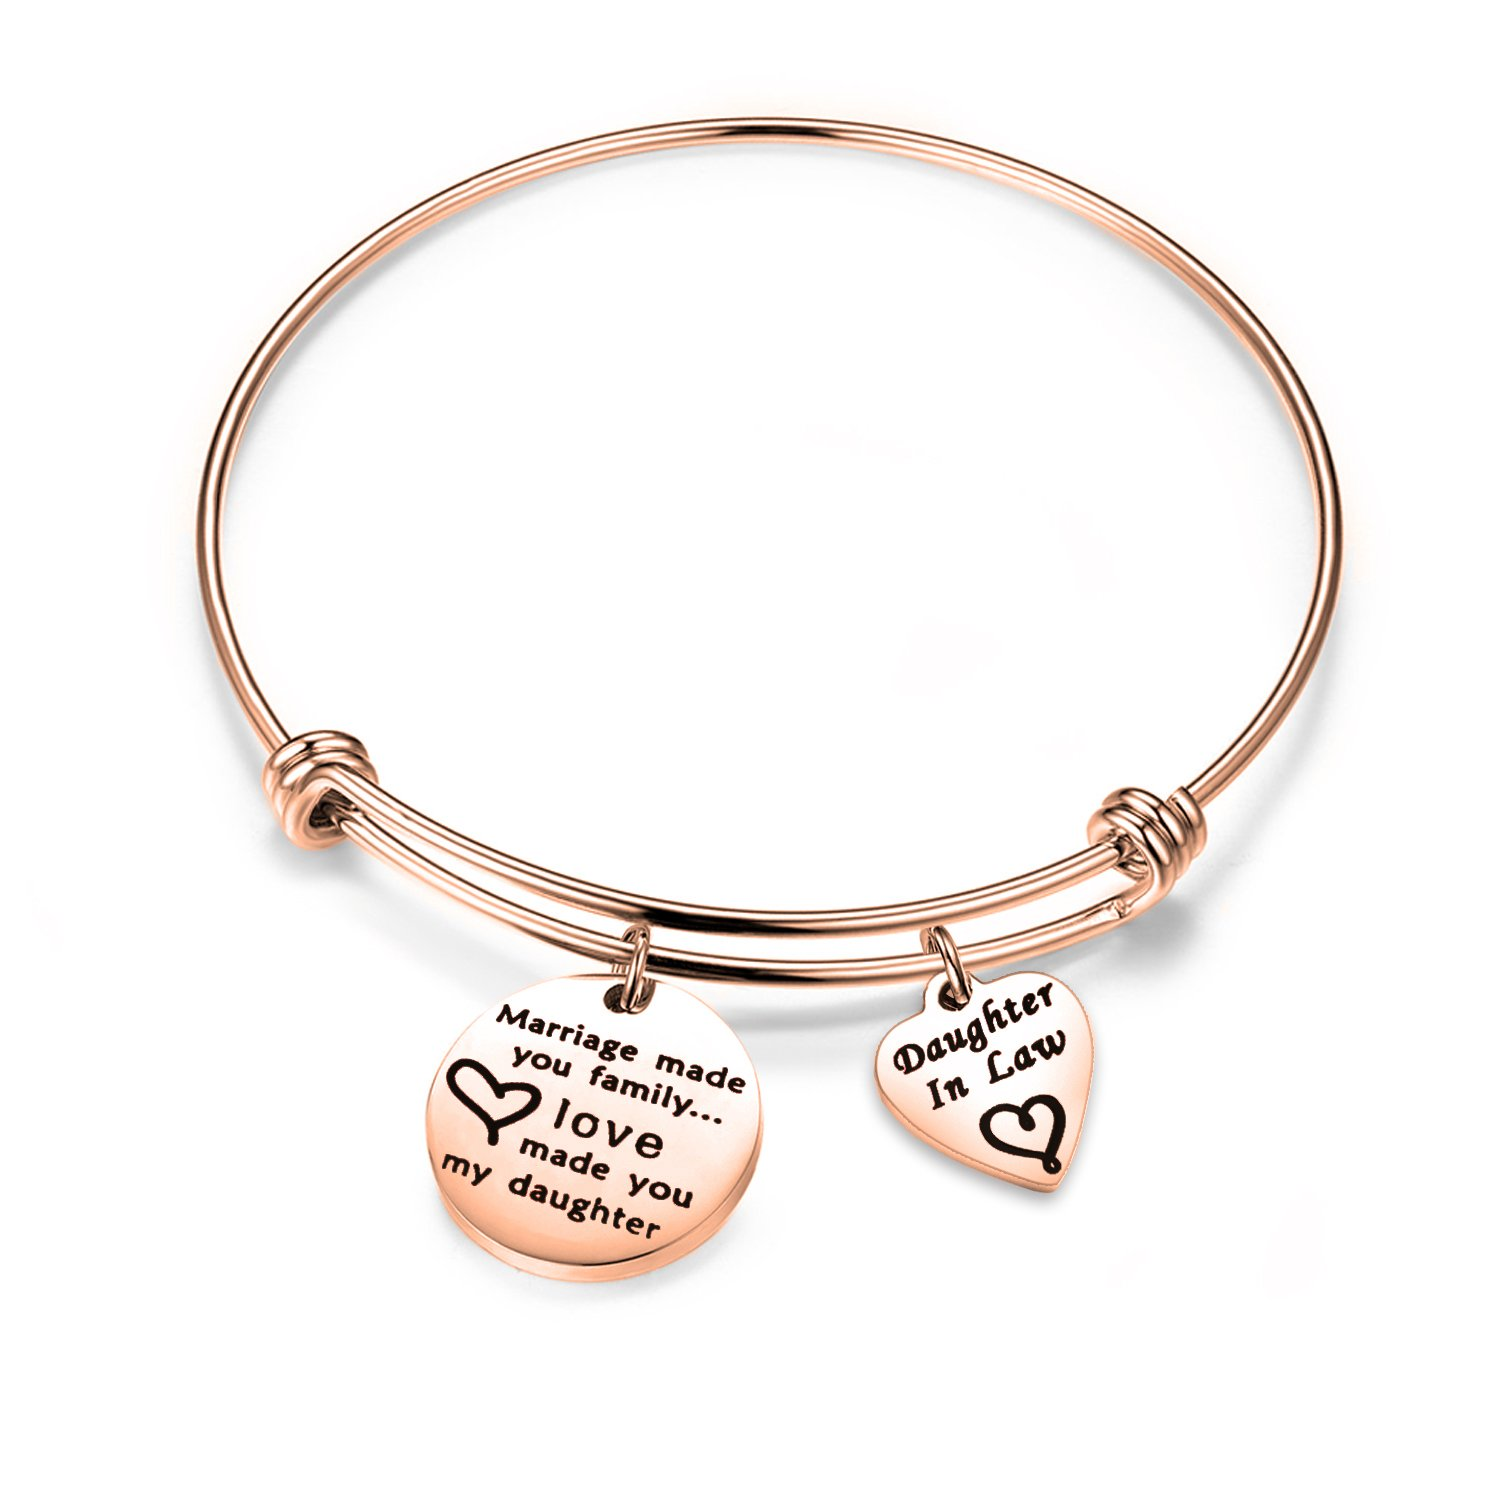 Zuo Bao Daughter in Law Gift Marriage Made You Family Love Made You My Daughter Bracelet Step Daughter Jewelry (Rose Gold)